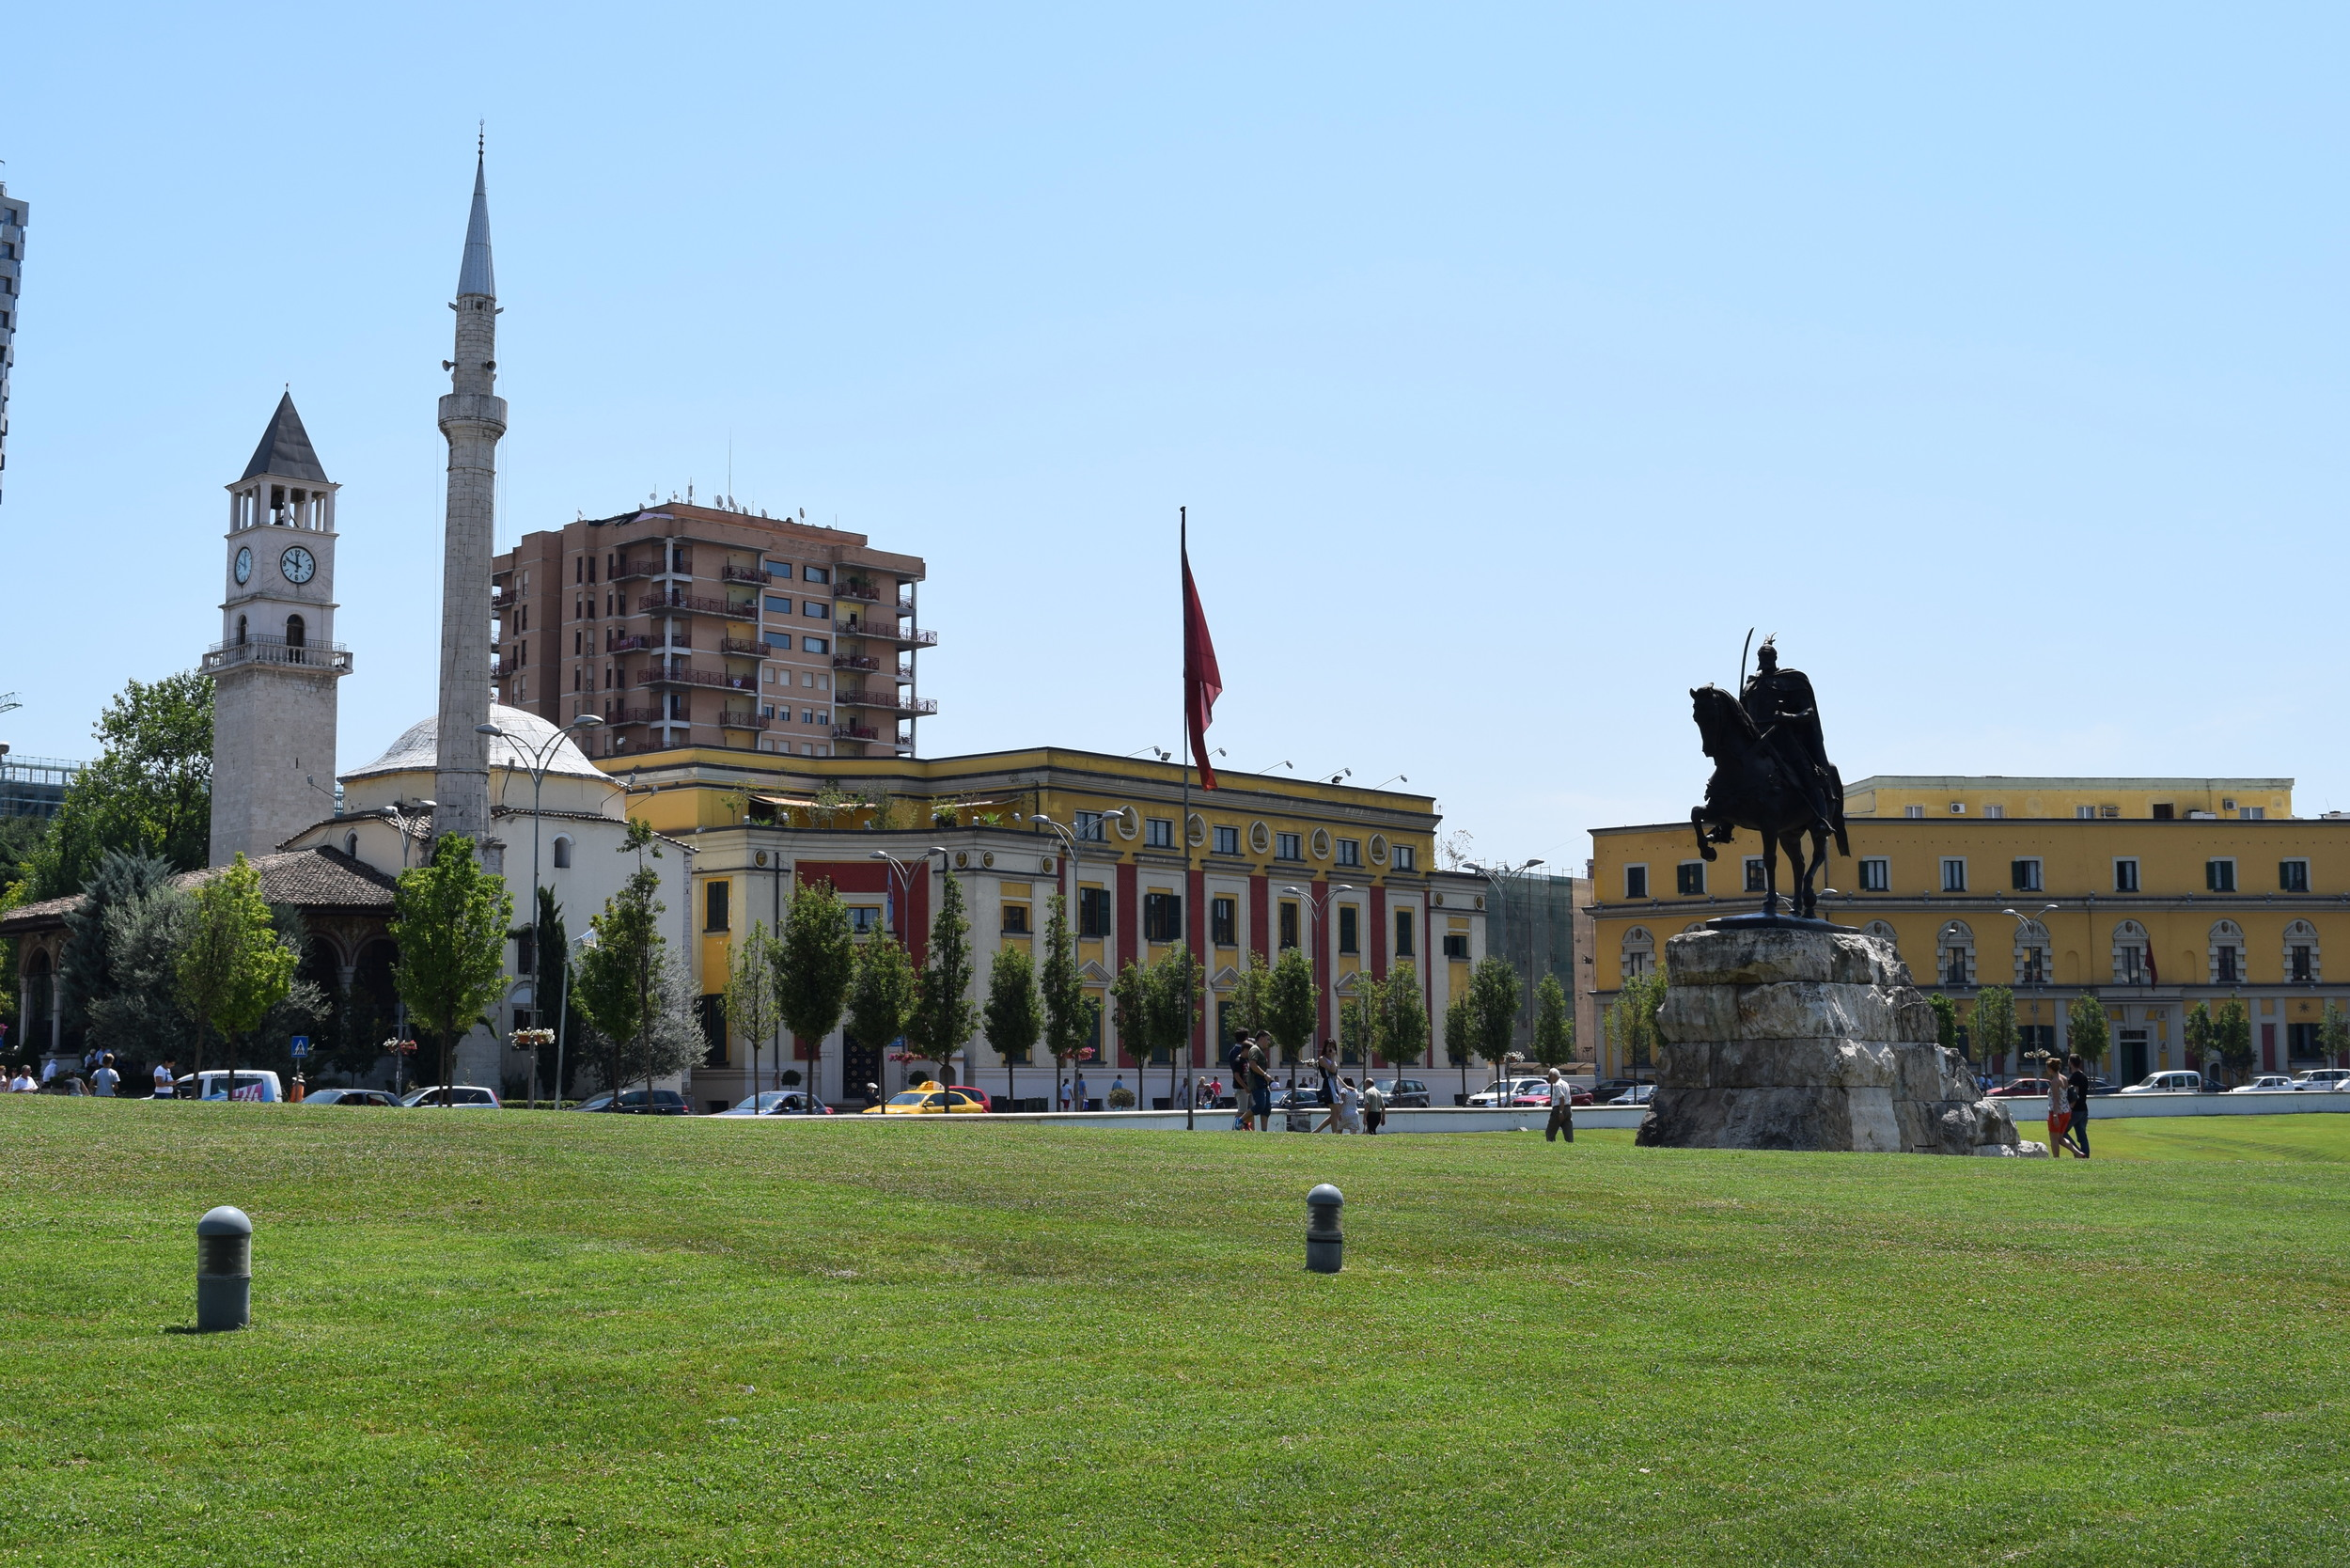 Et'Hem Bey Mosque on the left with statue of Skanderbeg